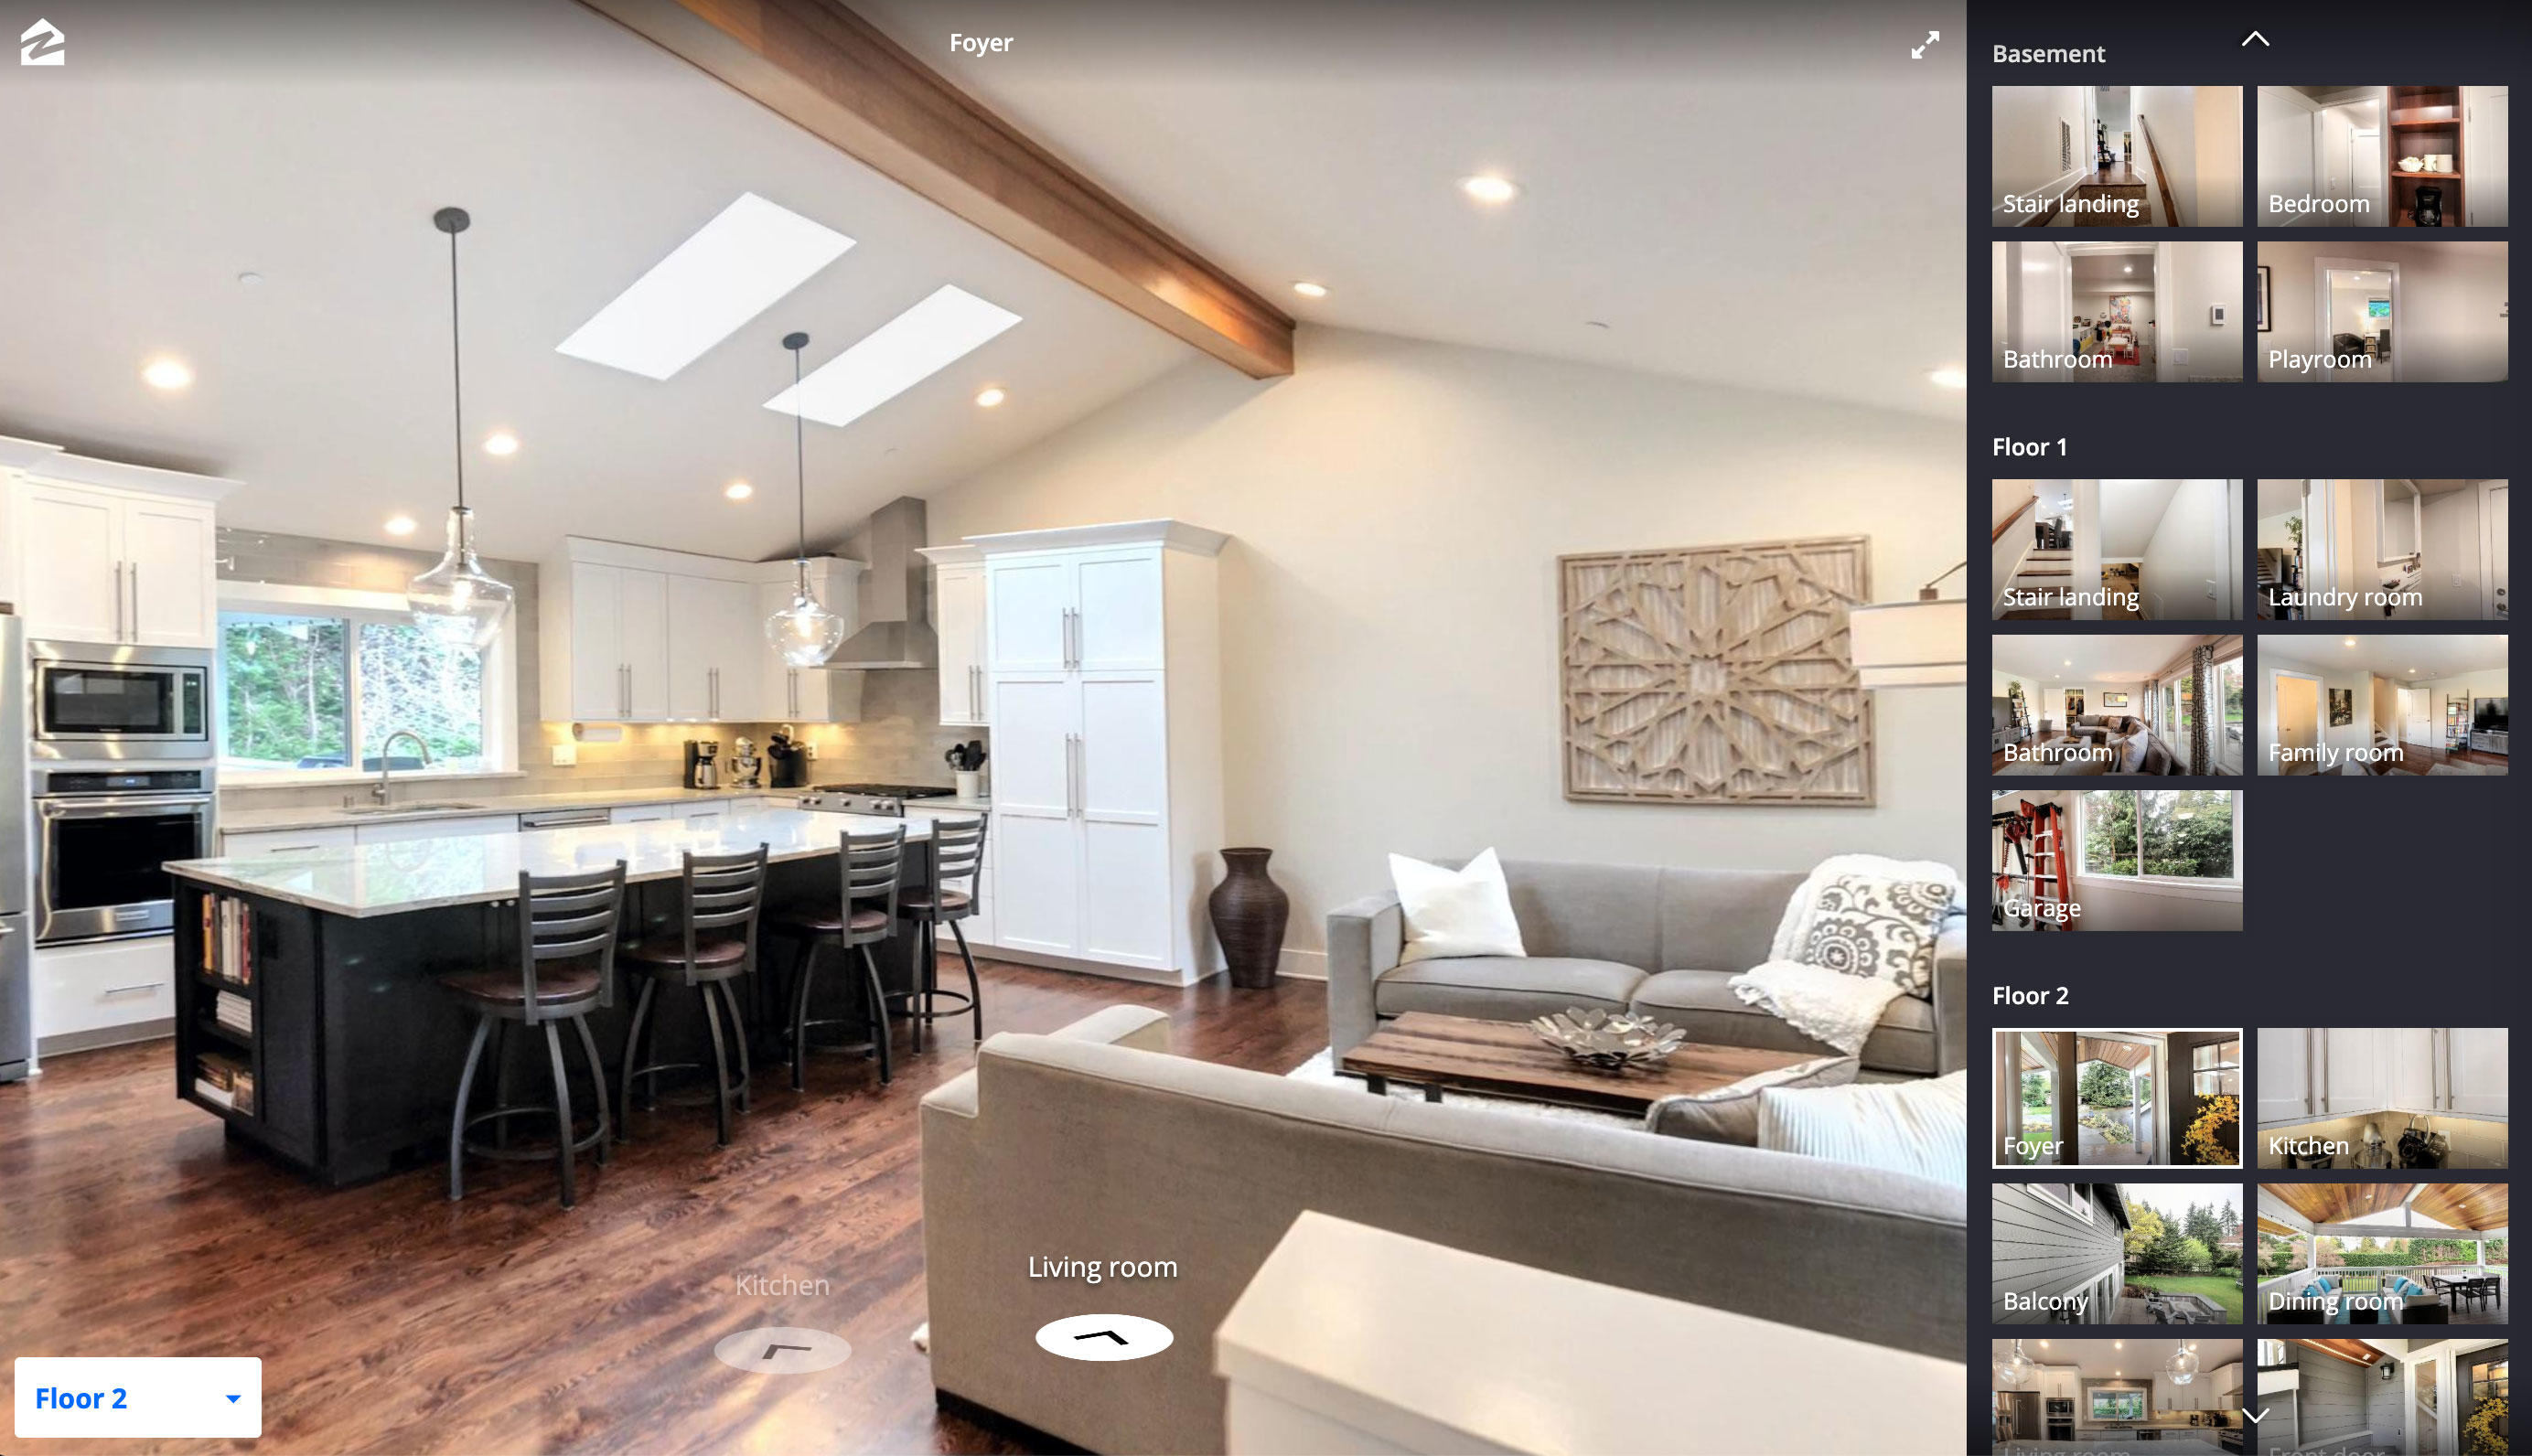 Zillow's 3D Home tool lets real estate agents show immersive VR views of homes for sale.